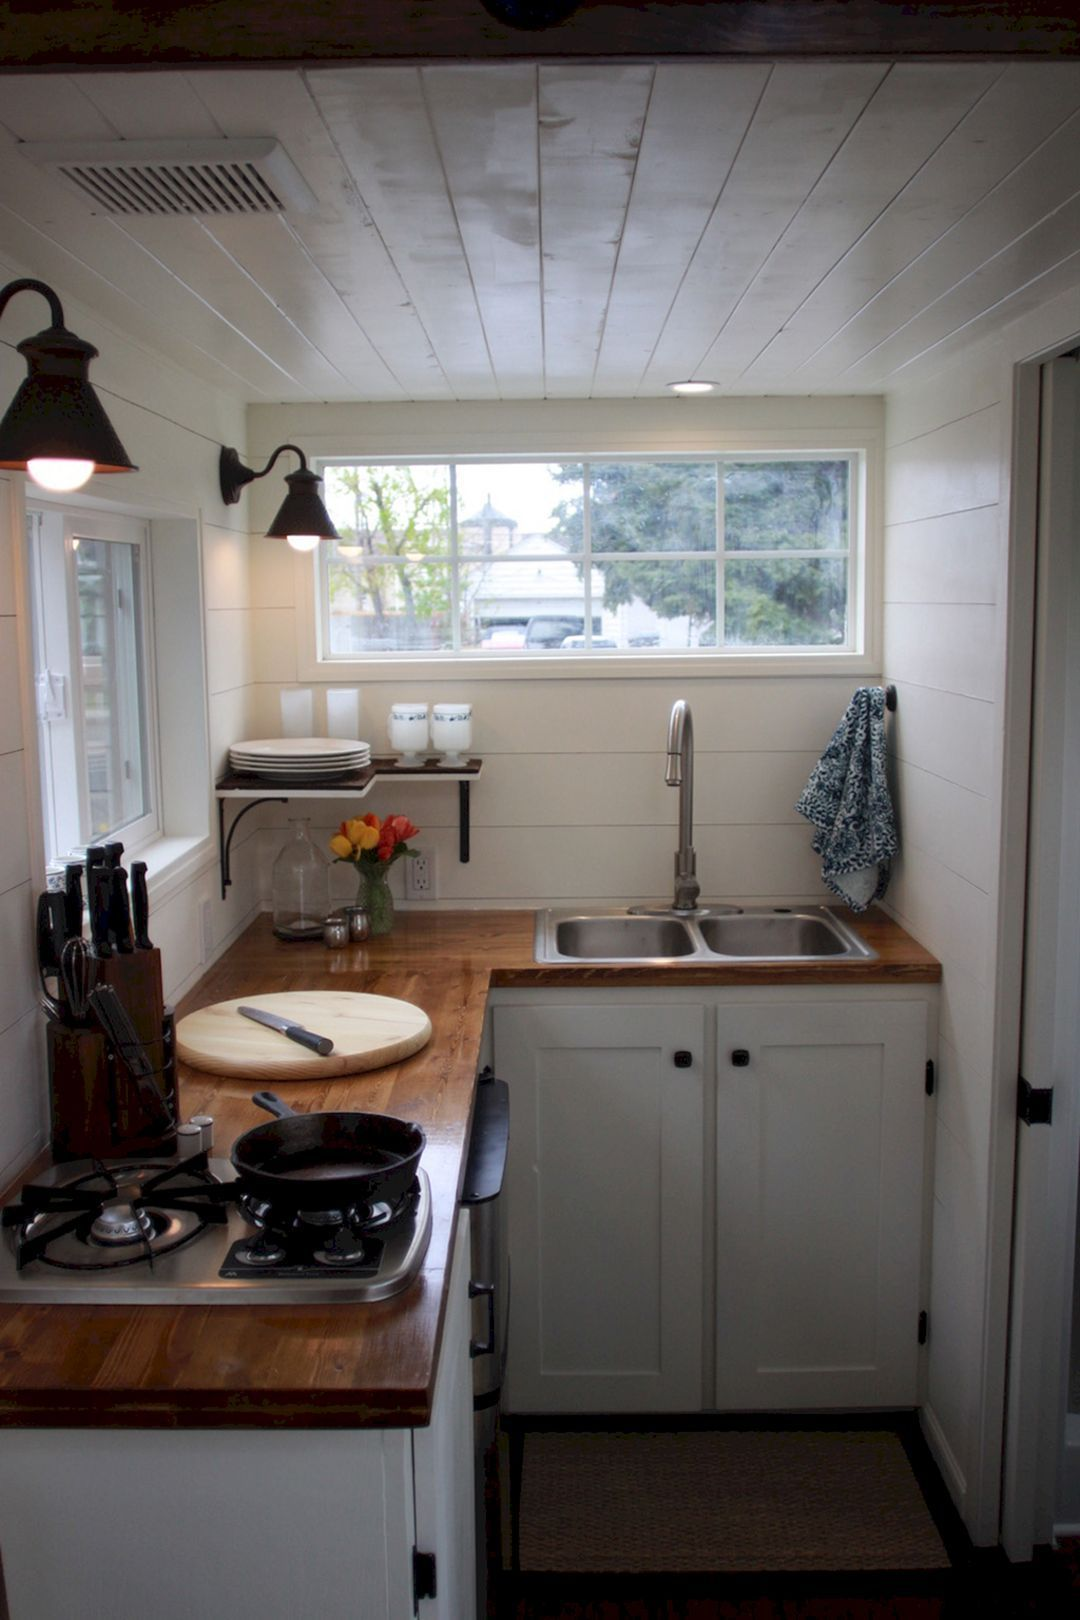 Tiny house interior design ideas awesome tiny kitchen design for your beautiful tiny house  best